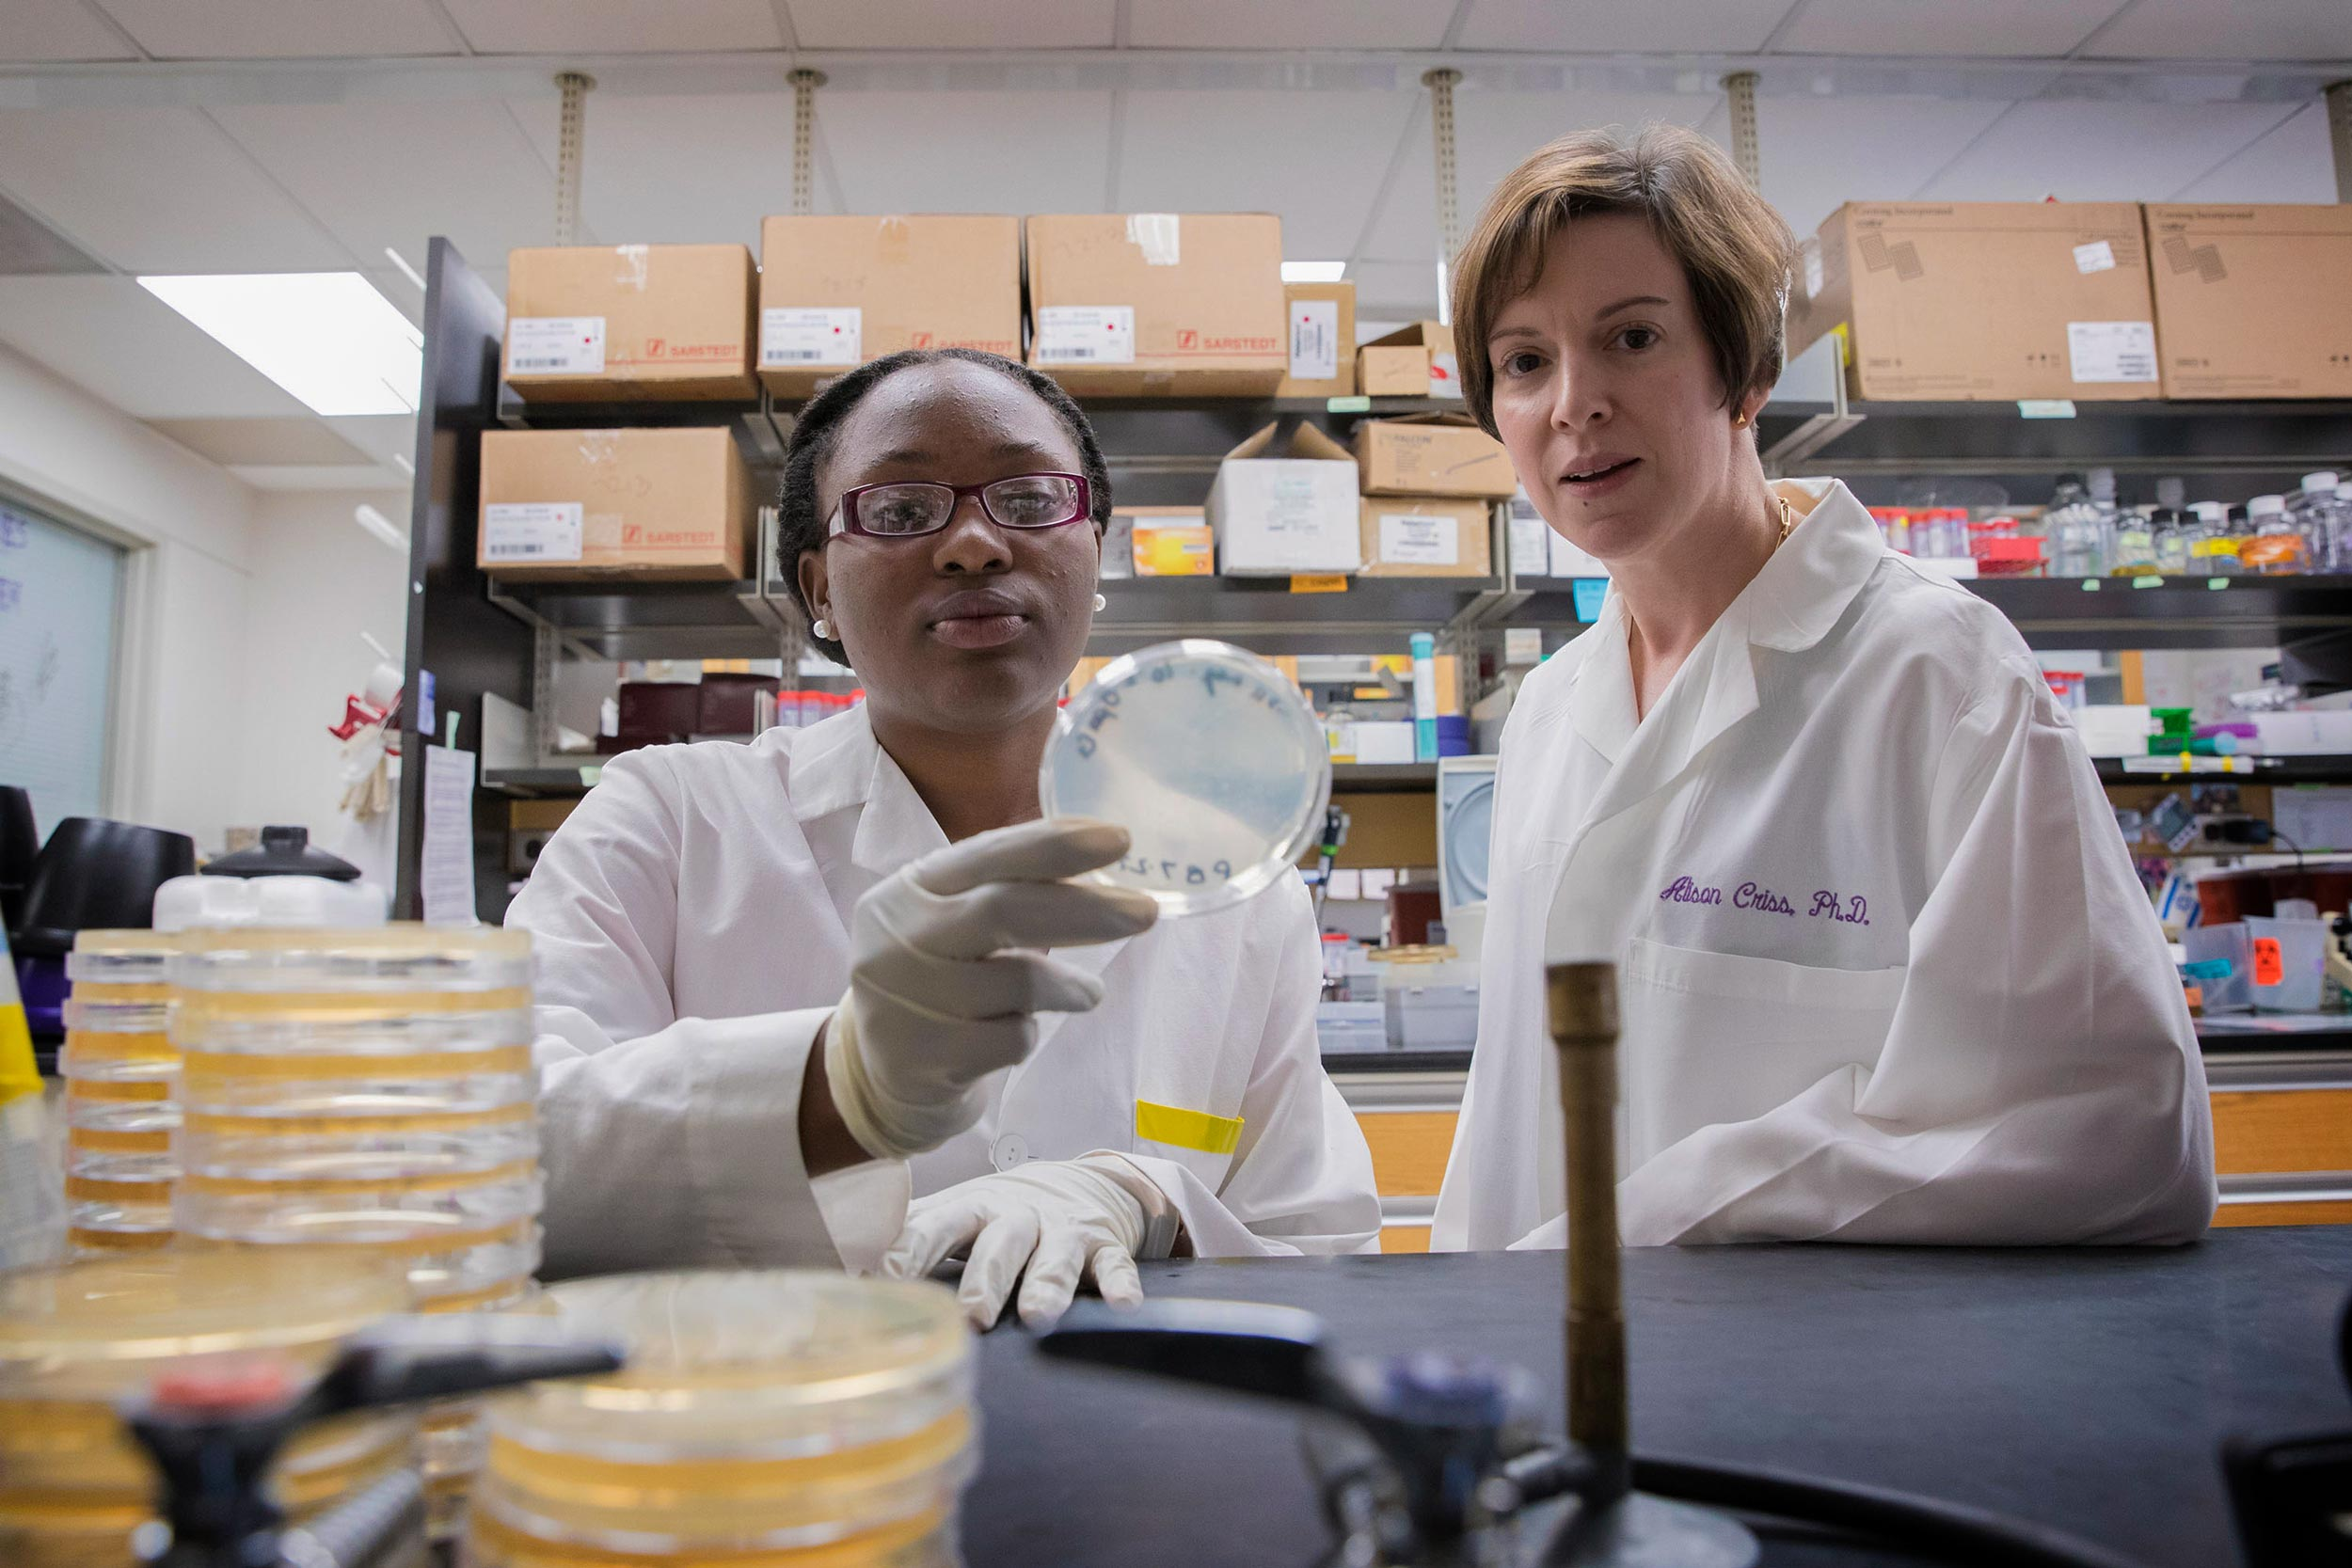 UVA biologist Alison Criss mentored Bennett College student Princess Bush, who conducted research in her lab during the summer program.